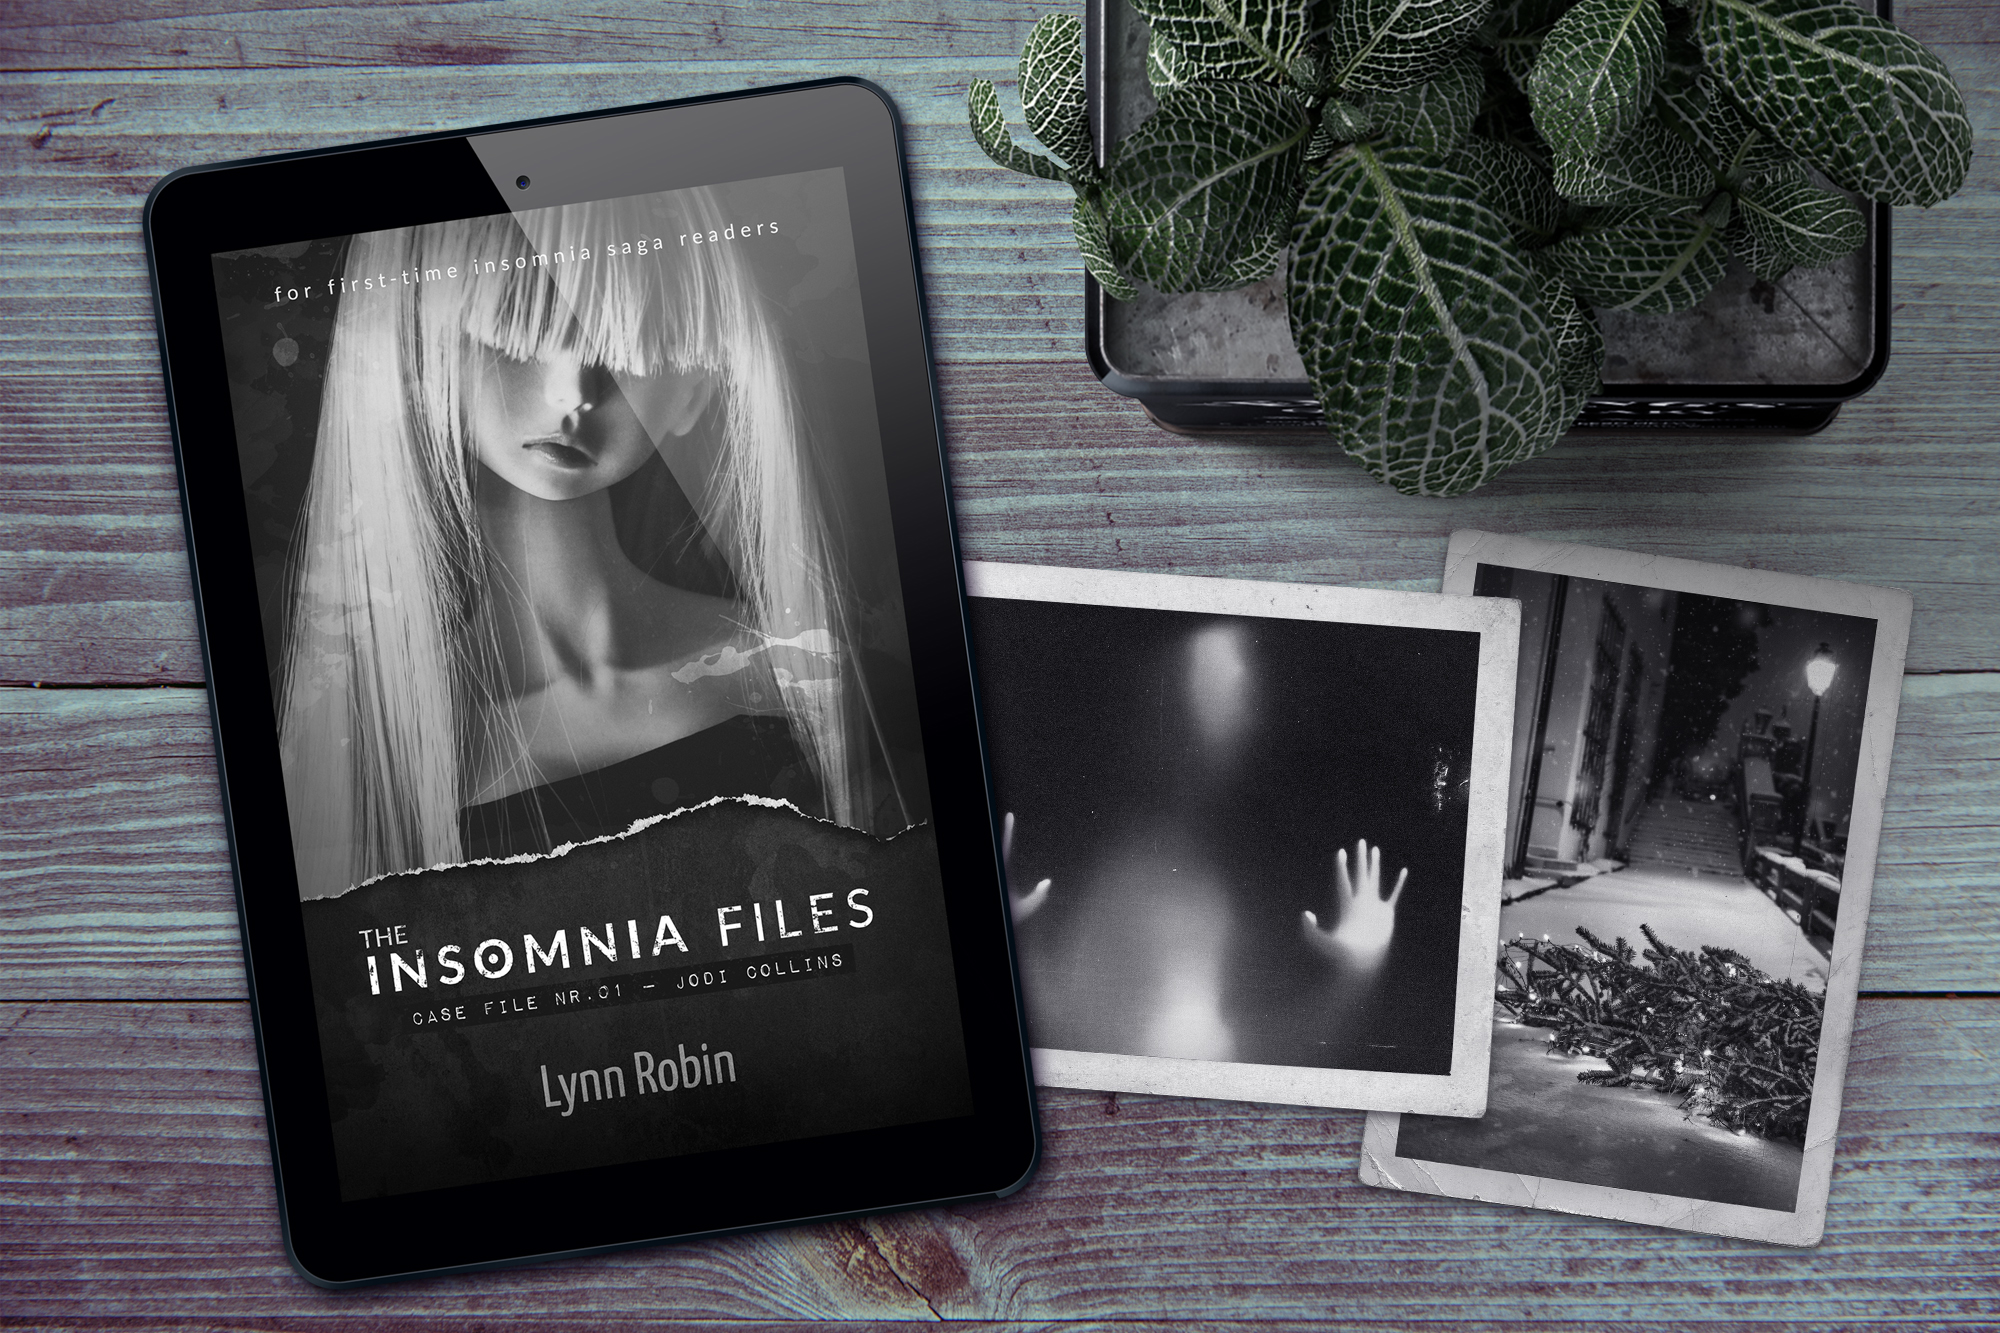 OUT NOW | FREE EBOOK: The Insomnia Files: FILE #1 JODI COLLINS (Insomnia Saga 0.1)